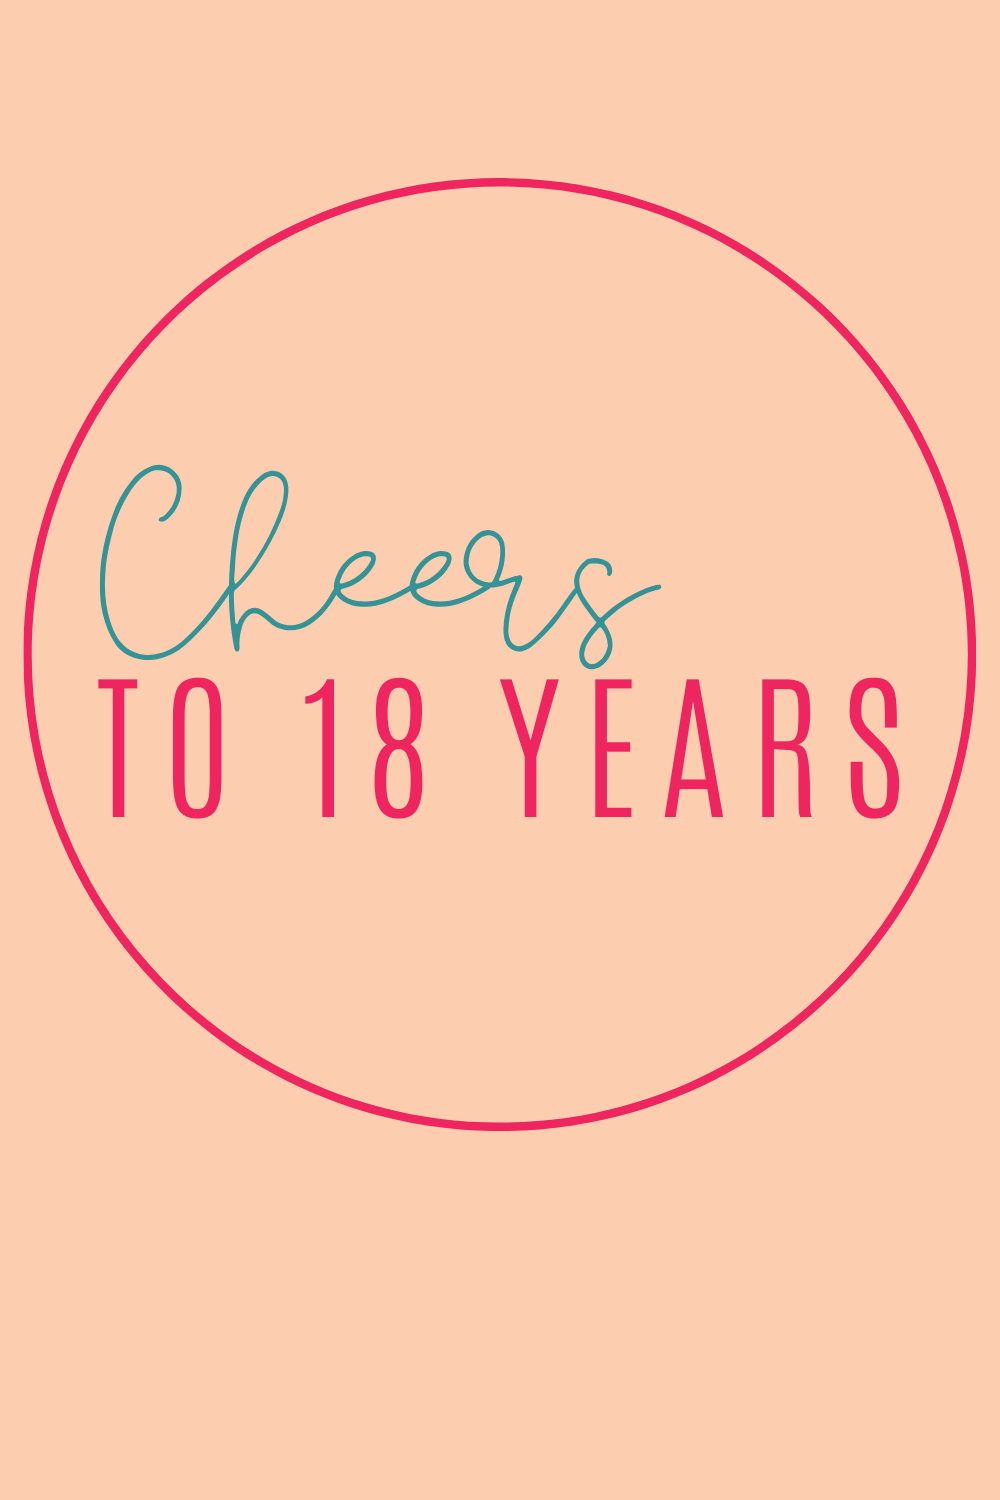 Cheers to 18 years quotes